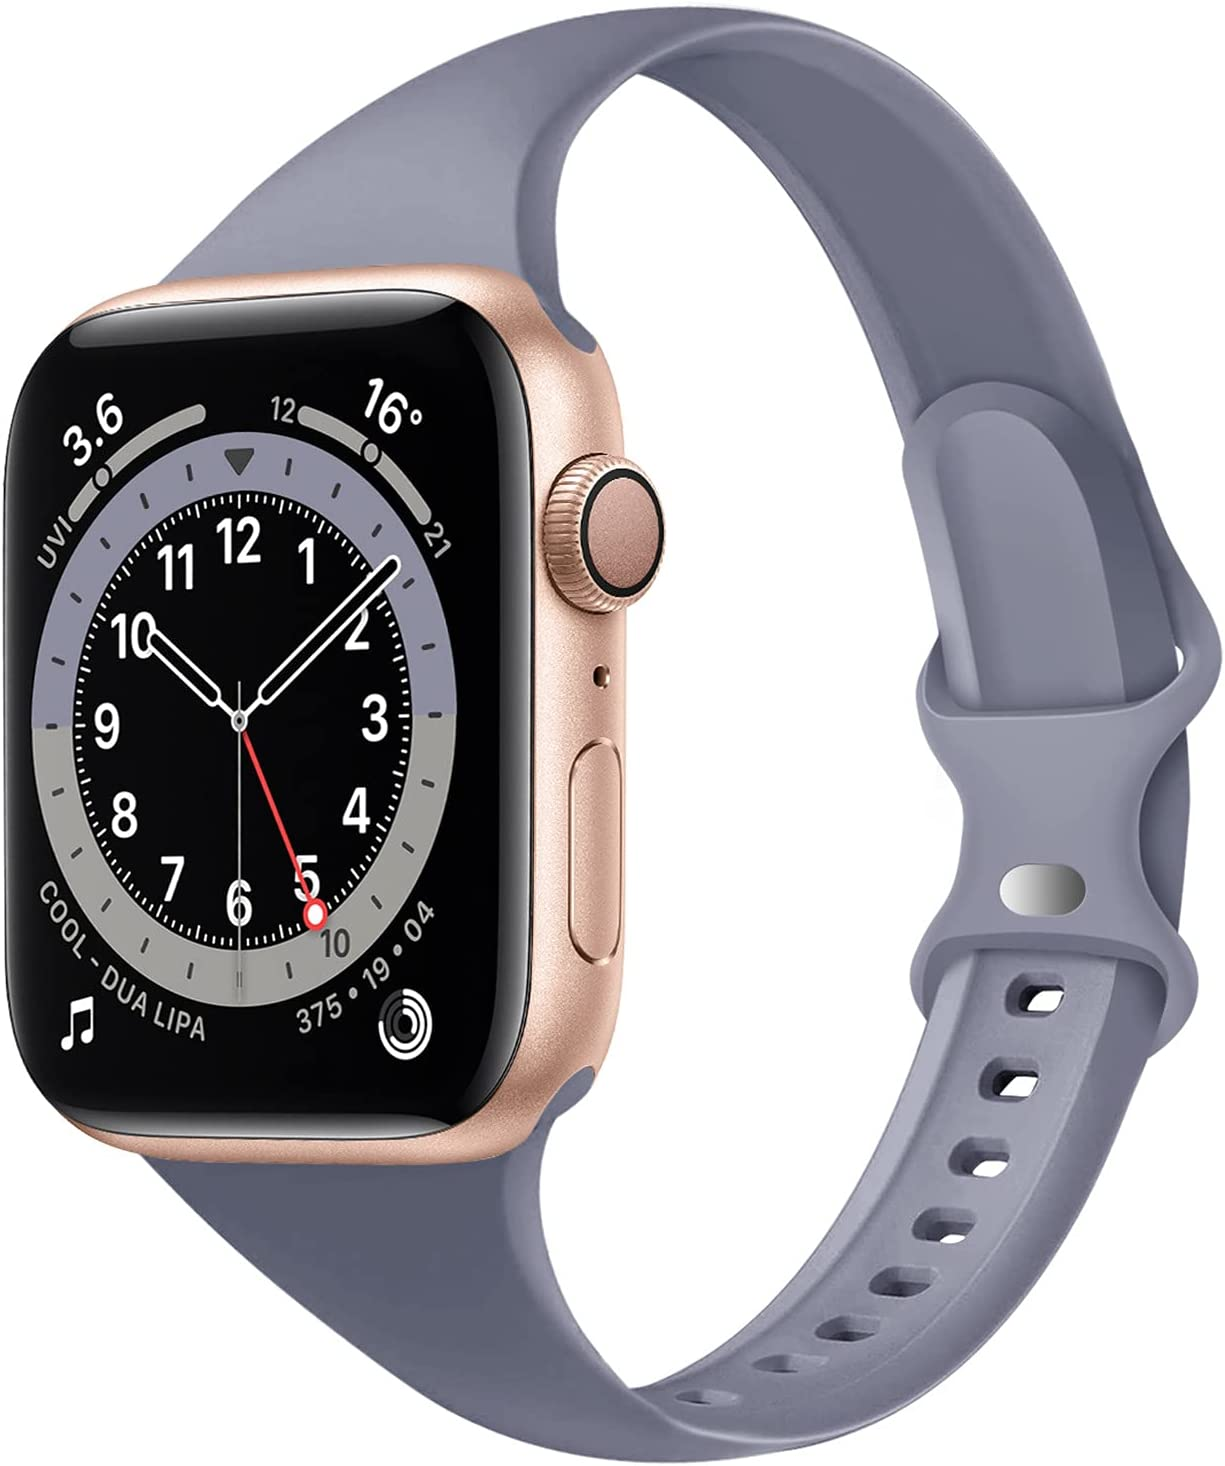 Acrbiutu Bands Compatible with Apple Watch 38mm 40mm 42mm 44mm, Slim Thin Narrow Replacement Silicone Sport Strap for iWatch SE Series 1/2/3/4/5/6 Women Men, Lavender Gray 38mm/40mm